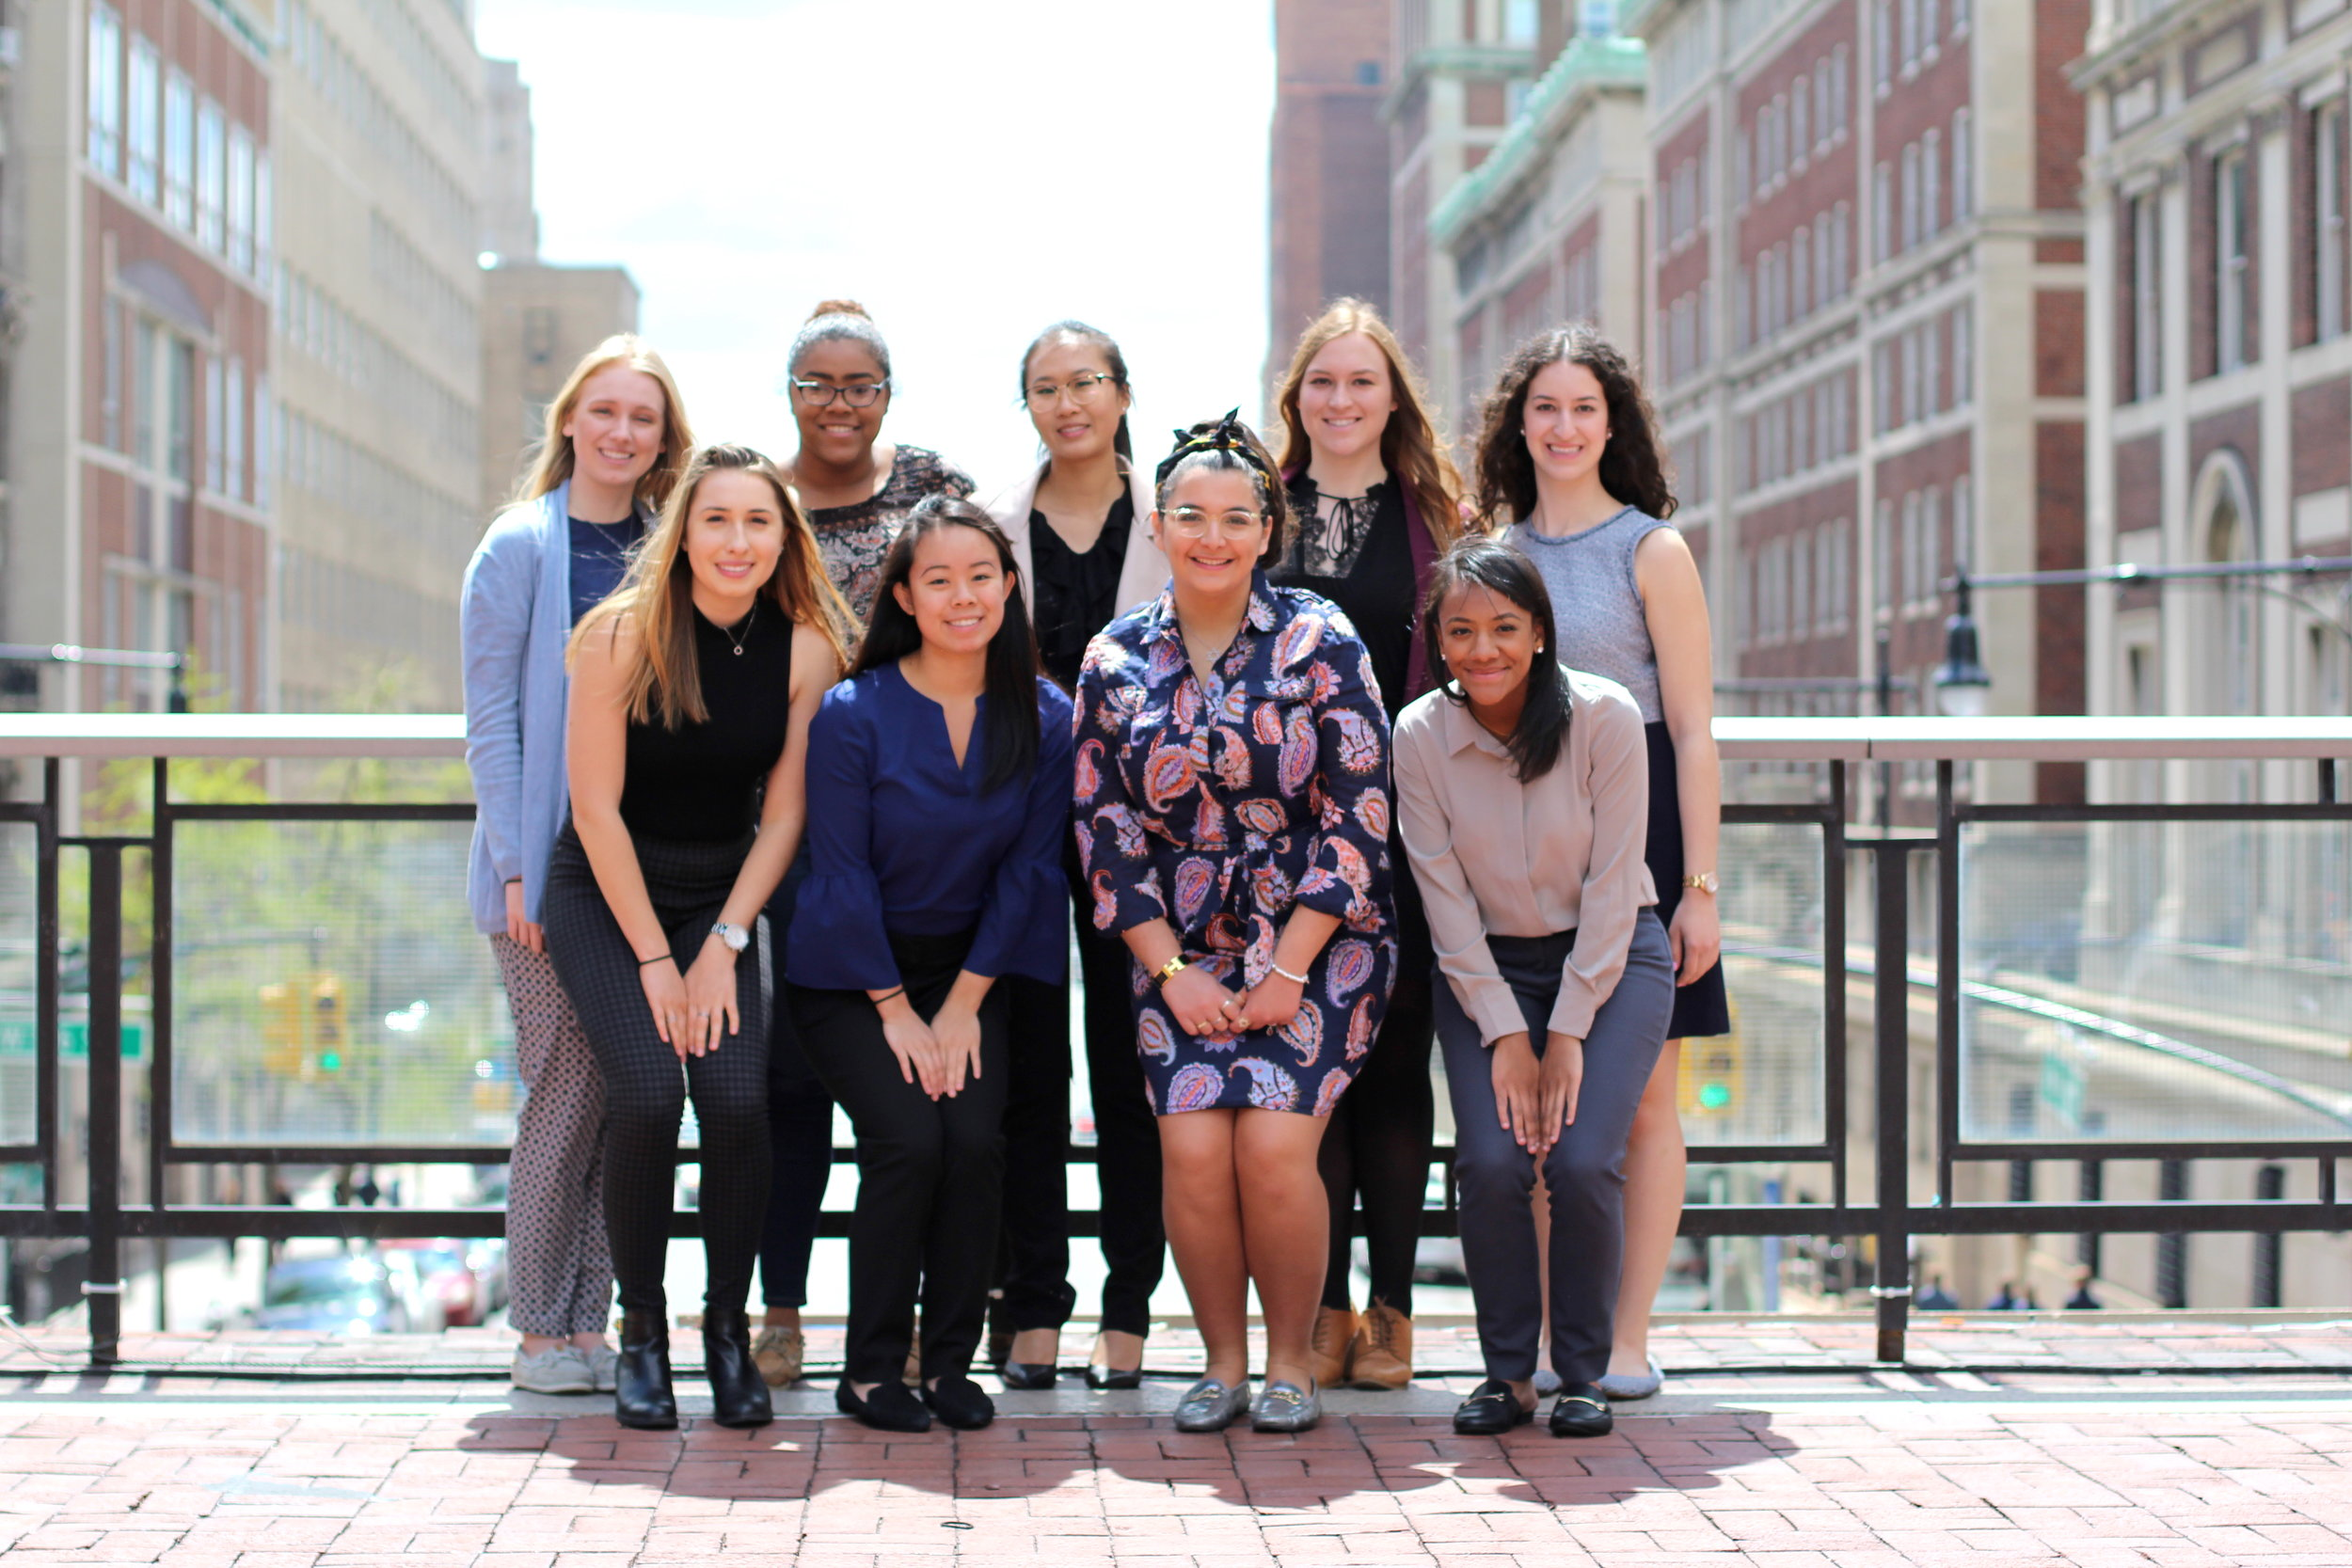 Executive Board - Made up of eleven women, the Executive Board is responsible for planning events, organizing committees, and maintaining the mission of CWBS.